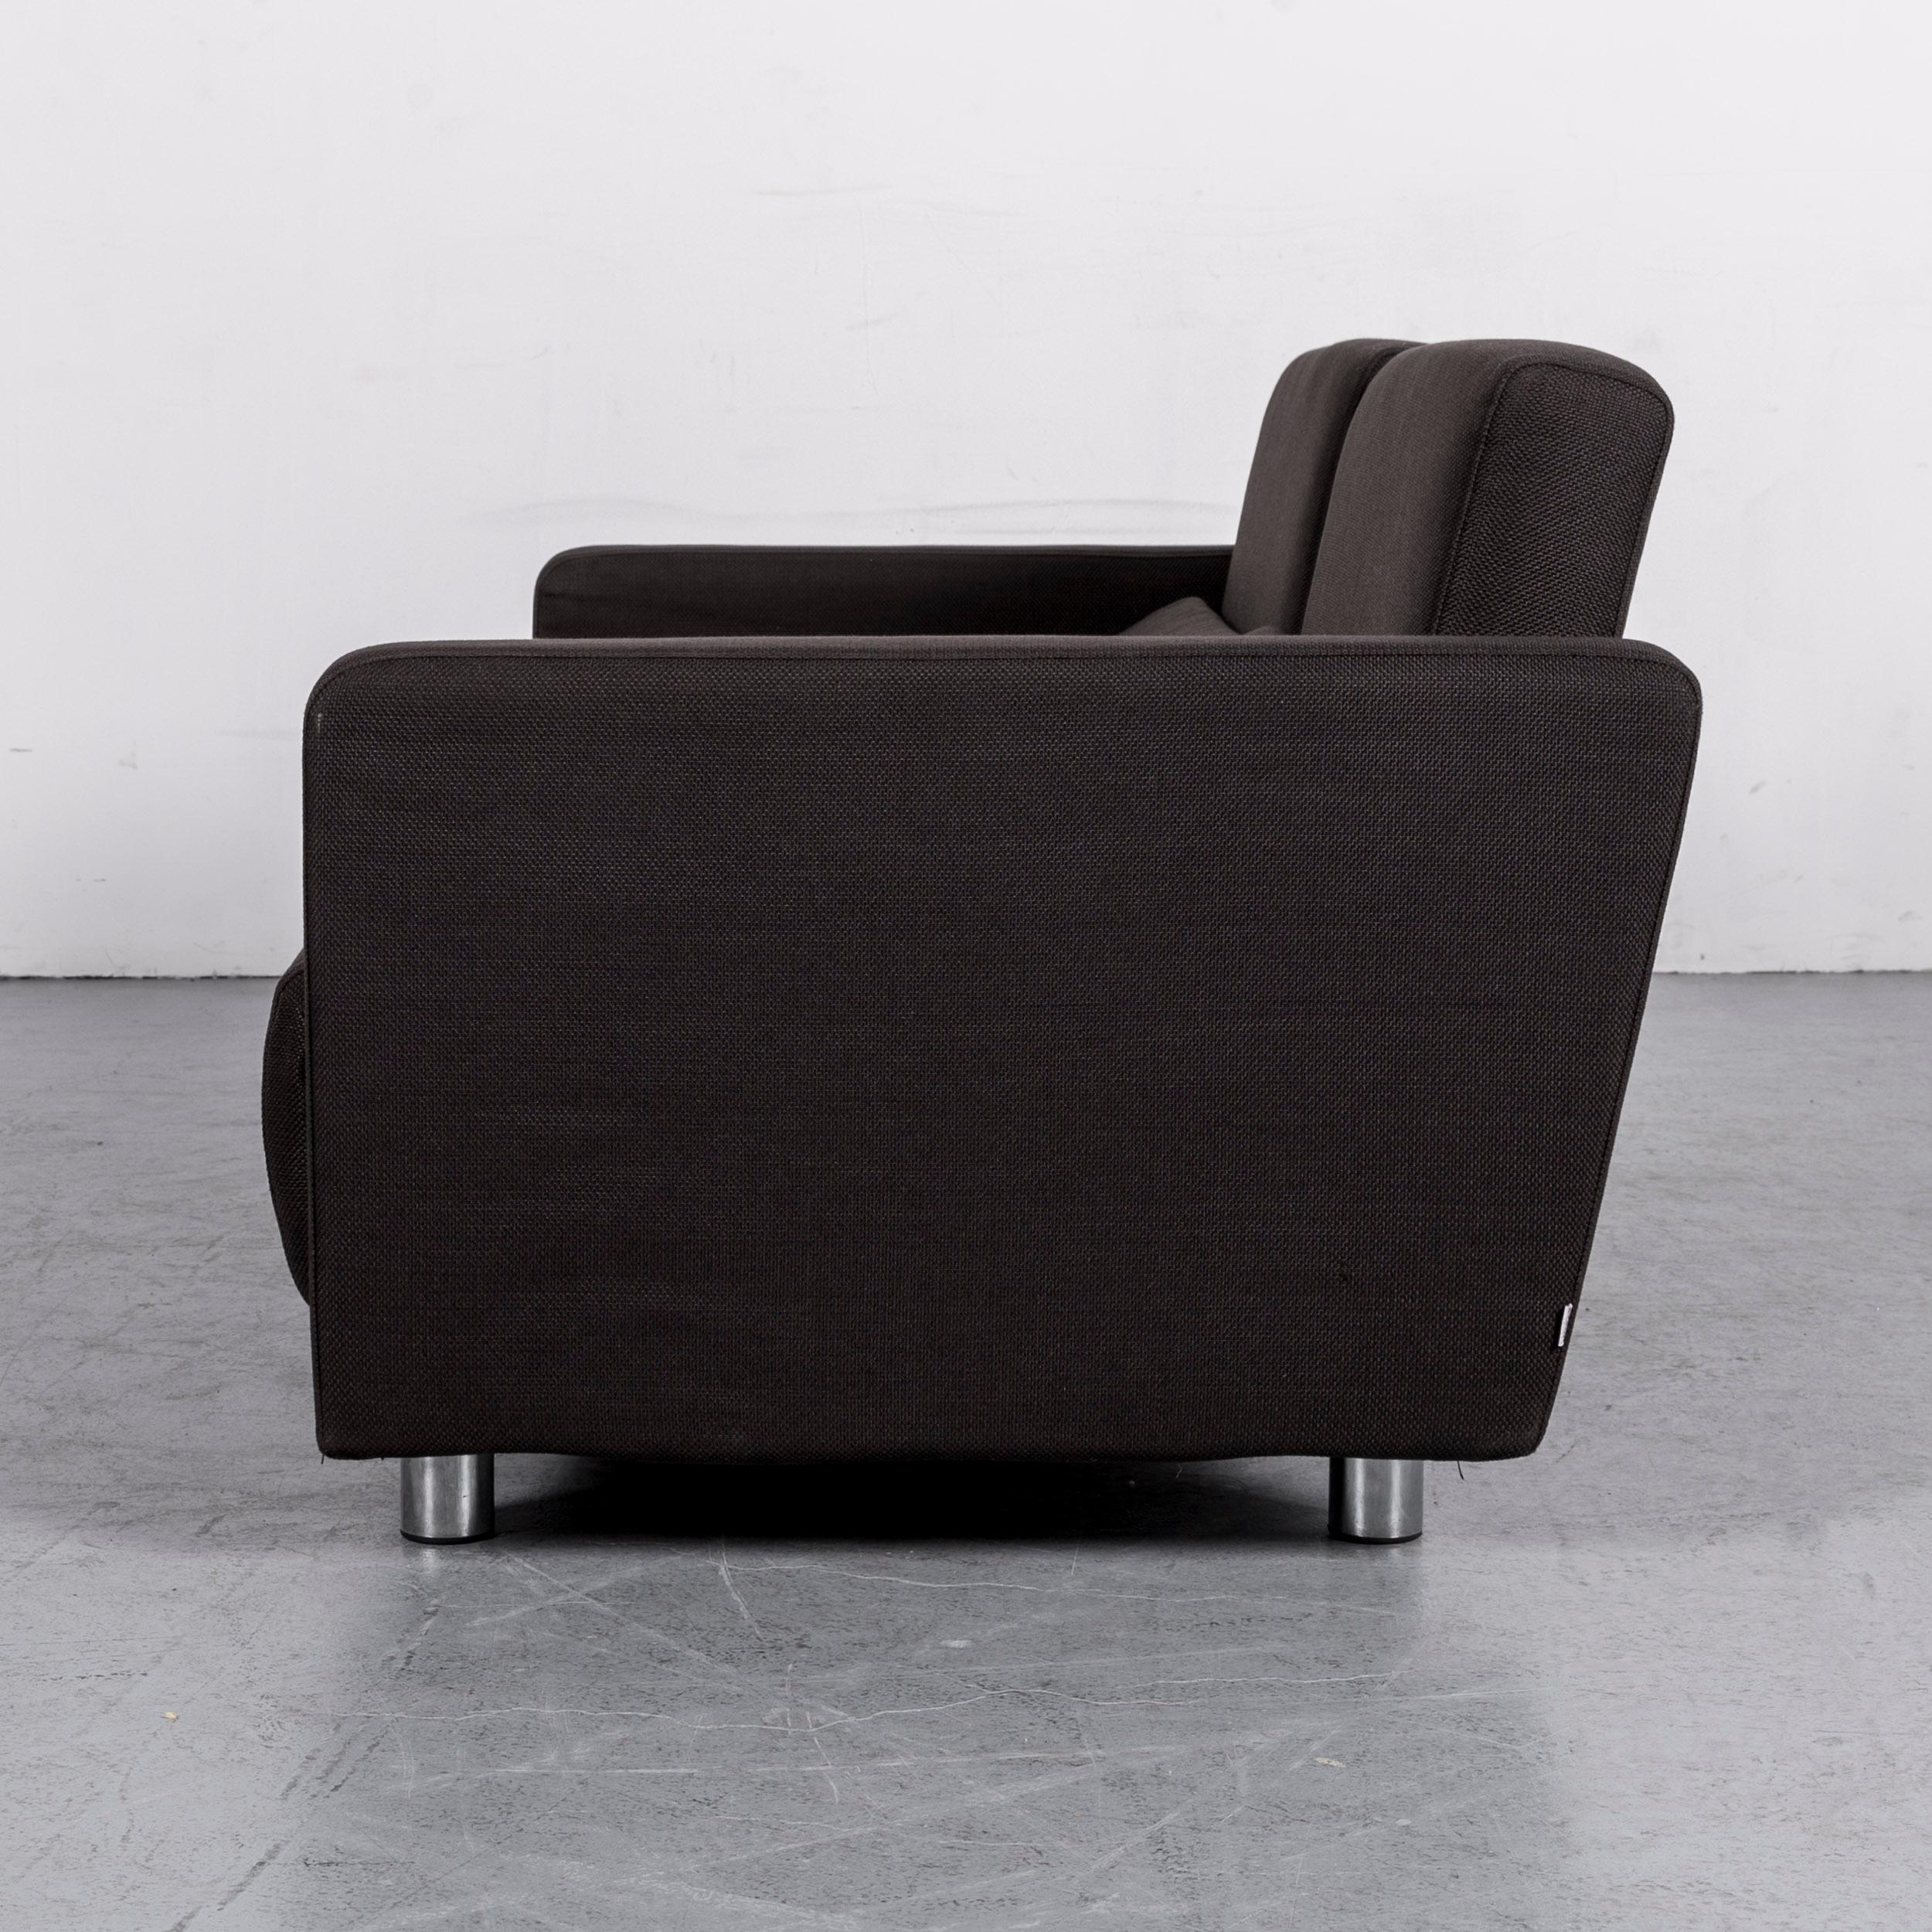 Superbe BoConcept Melo Designer Fabric Sofa Black Two Seat Couch With Function